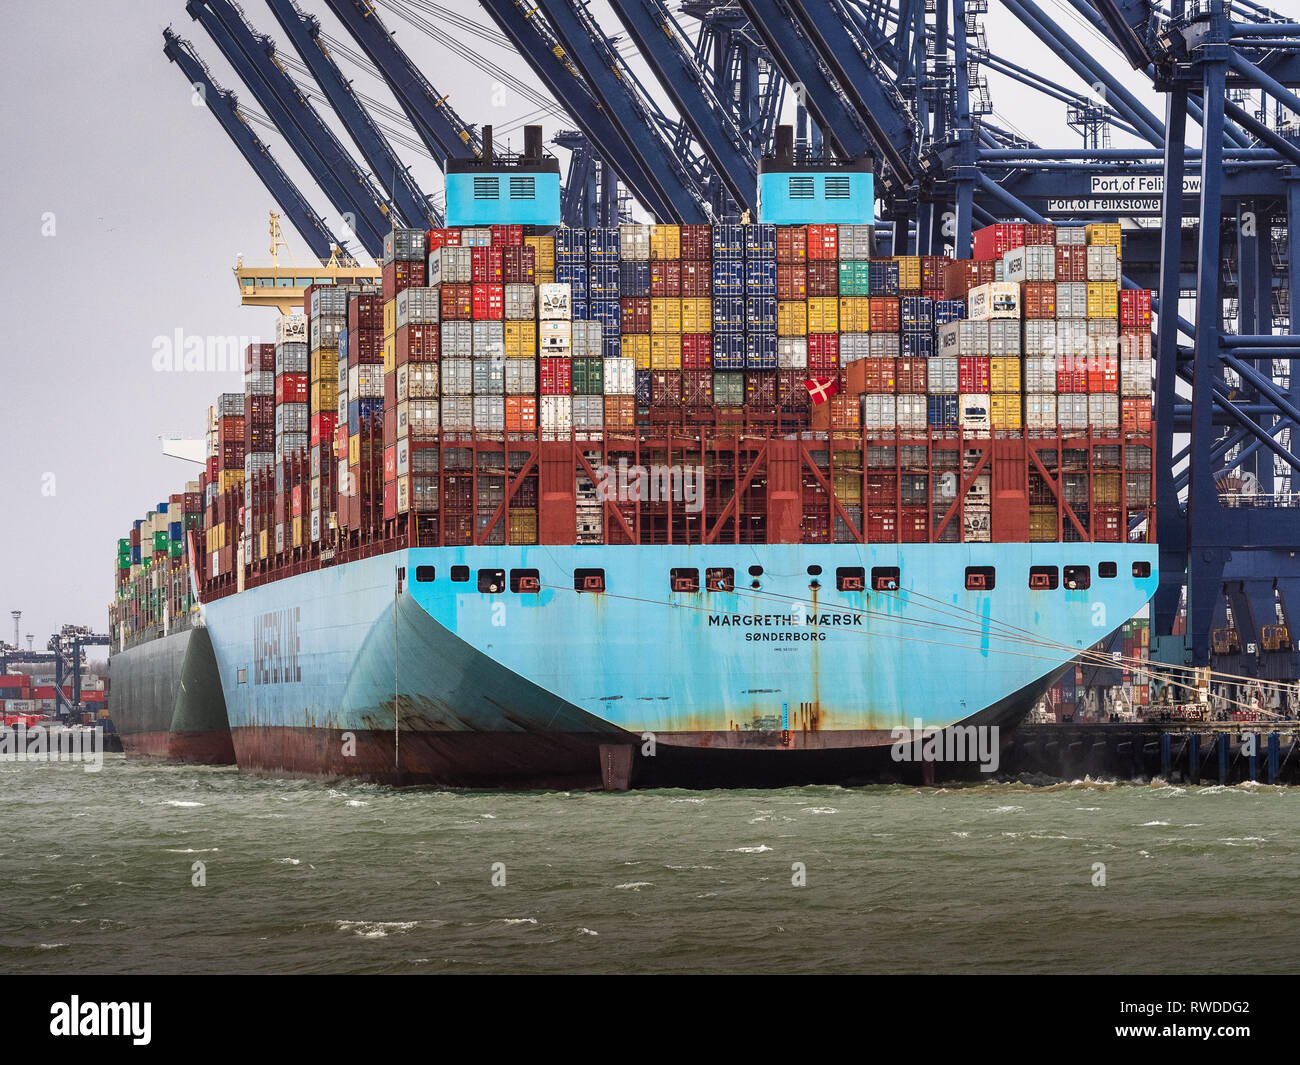 International Trade Delay - strong winds prevent the loading and unloading of containers at the Port of Felixstowe - Stock Image